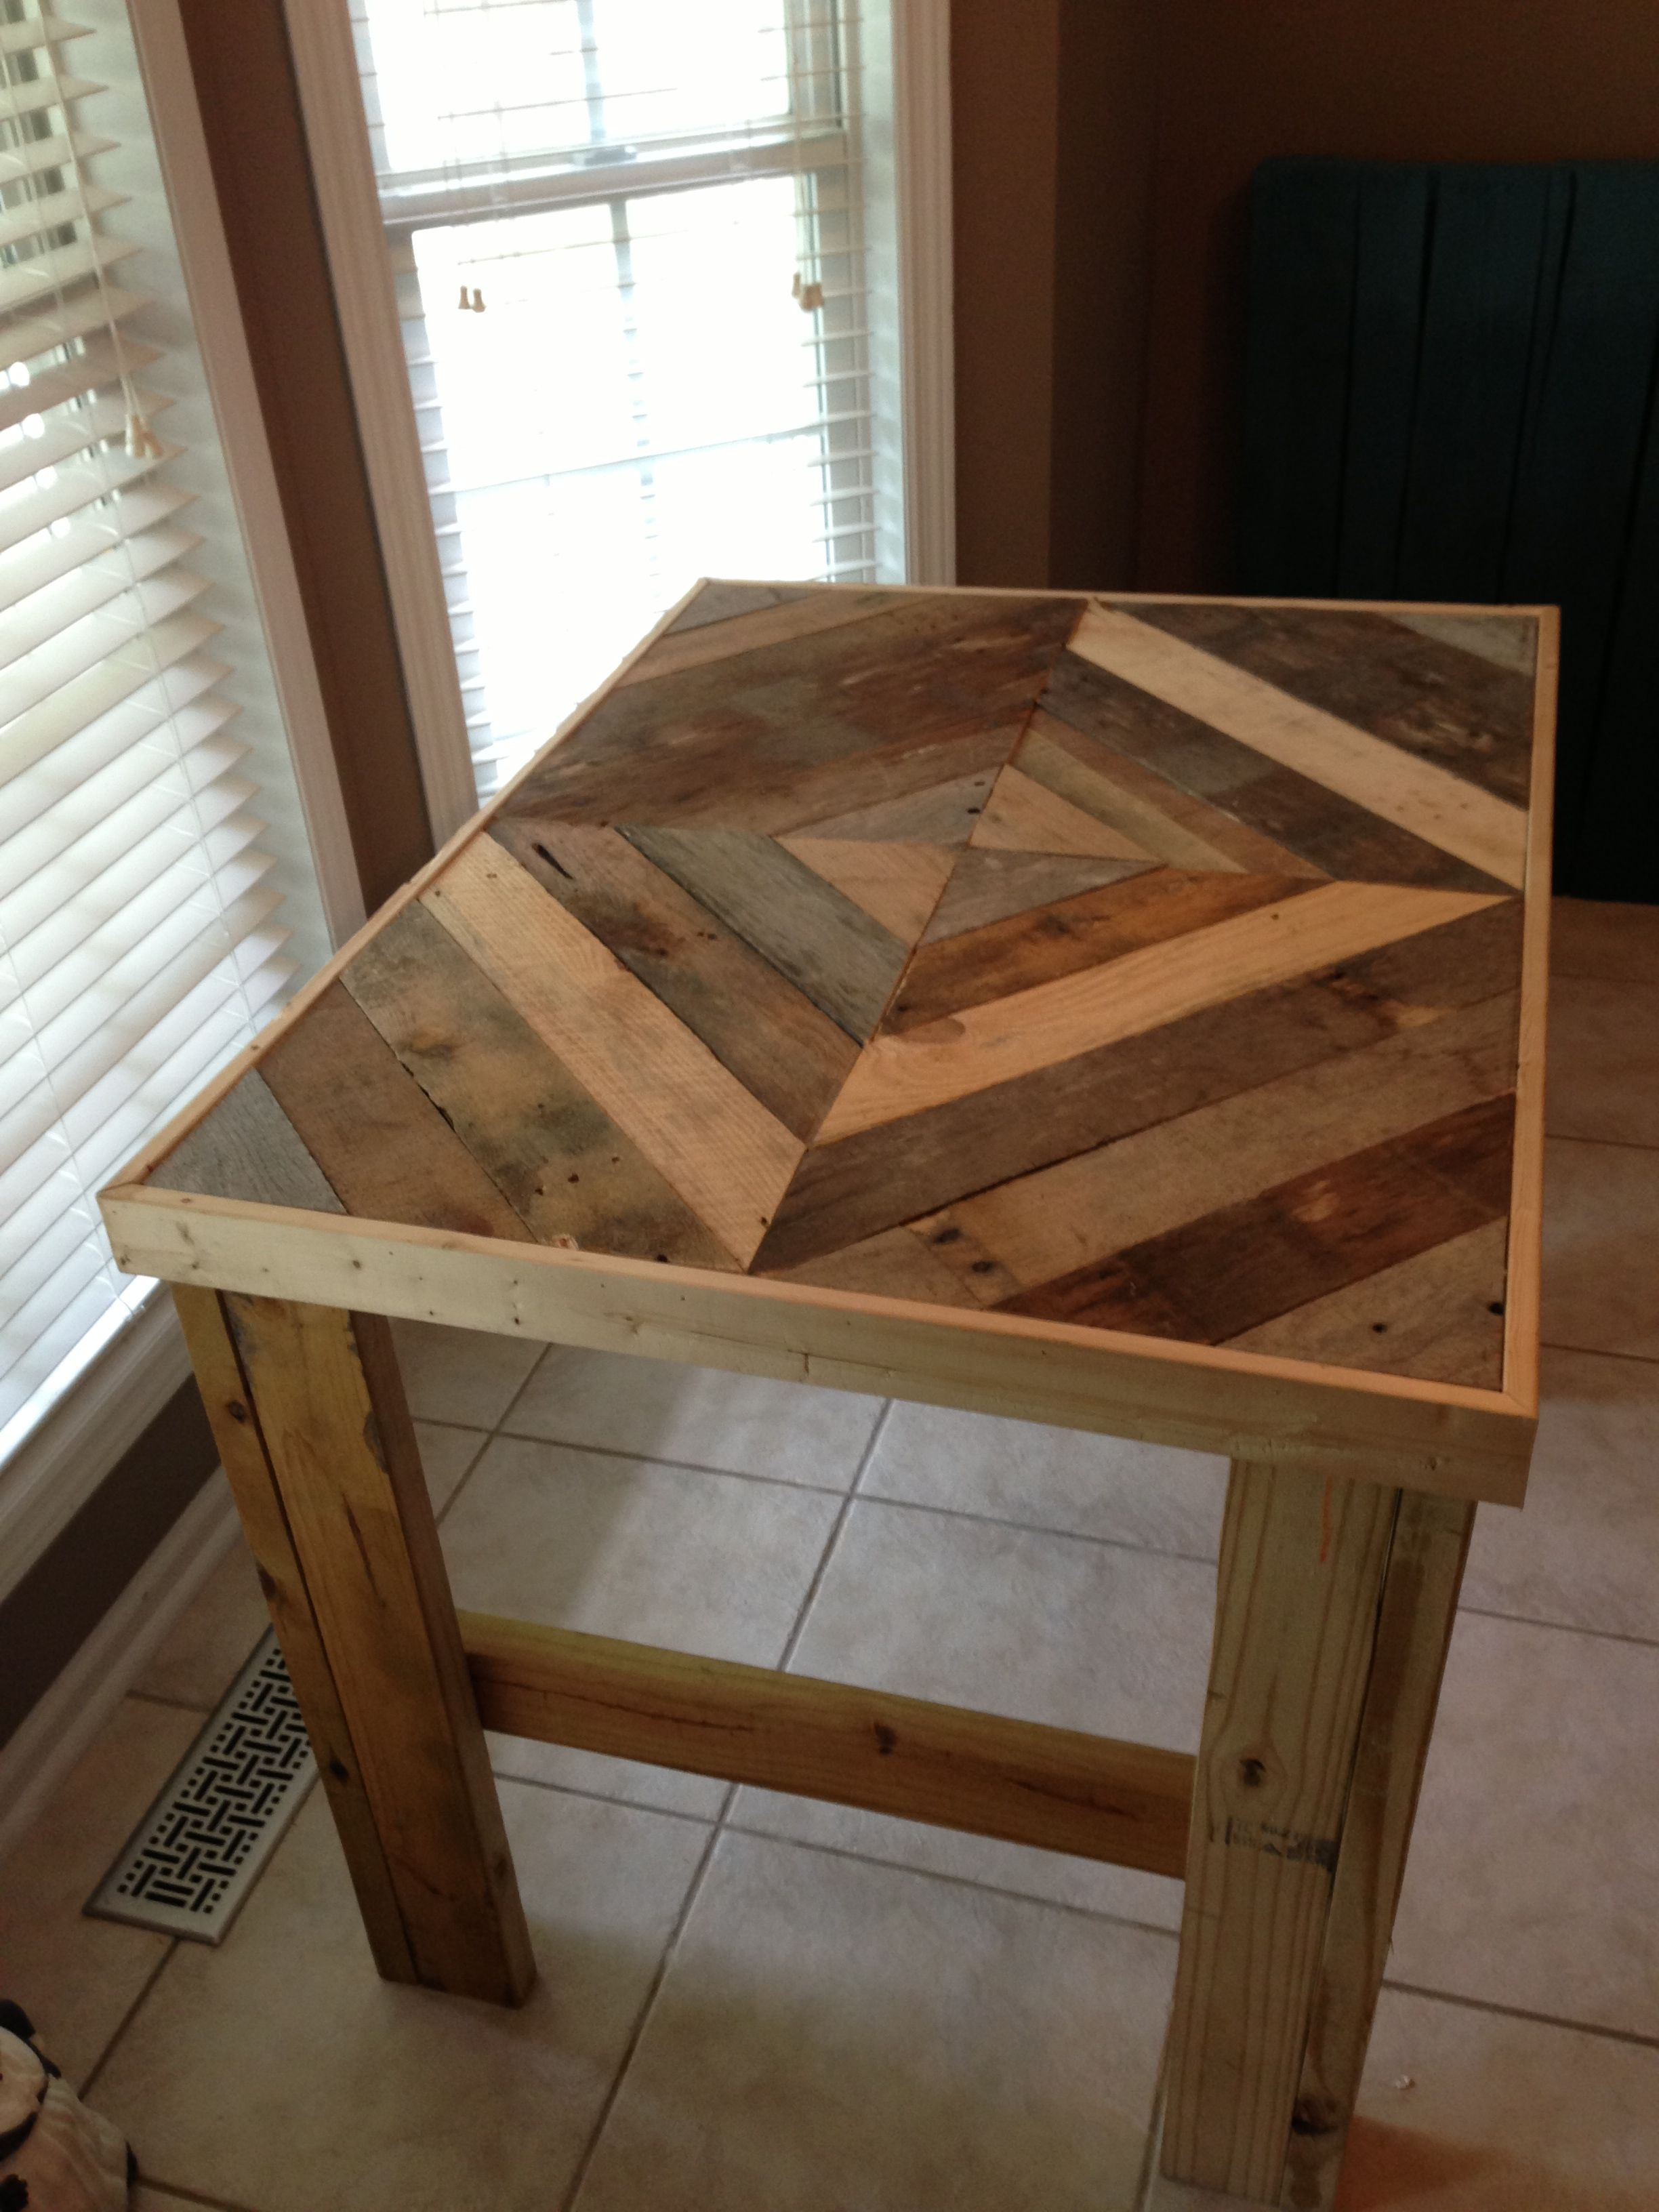 Pallet Table Wood Pallet Tables Wood Pallets Pallet Table